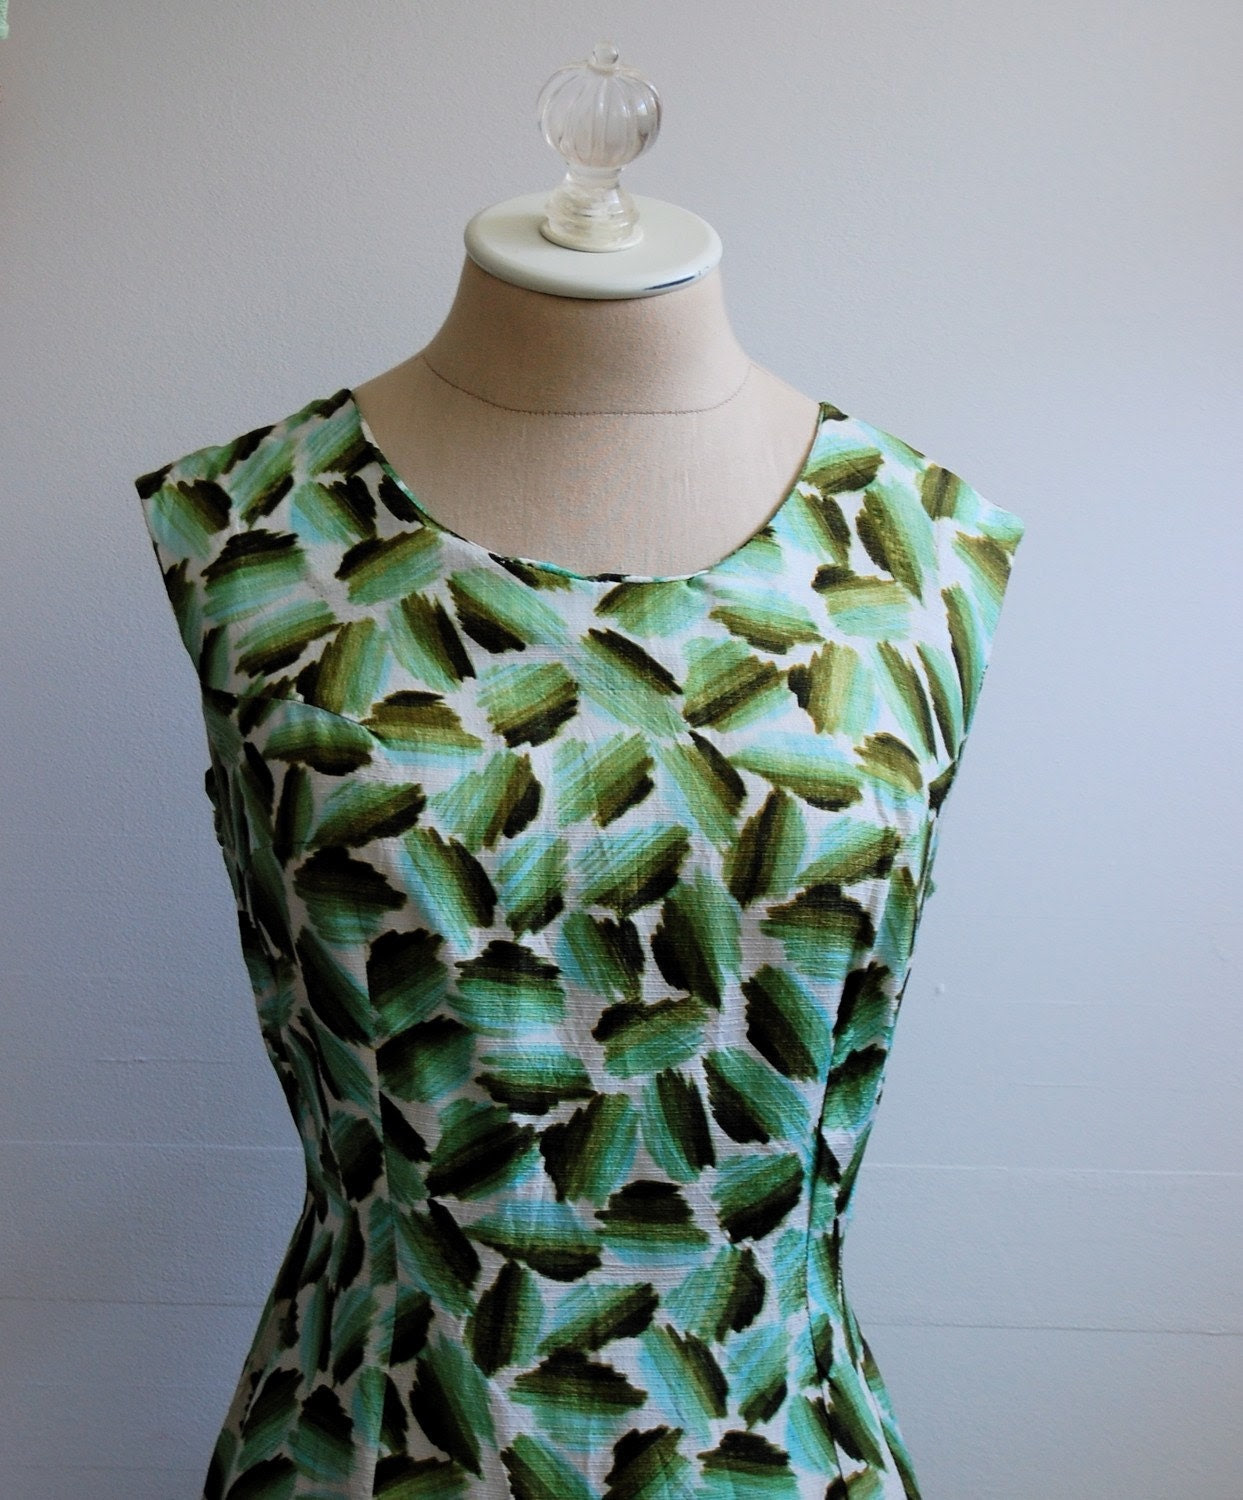 The Joplin- Vintage 1960s Abstract Printed Shift Dress L